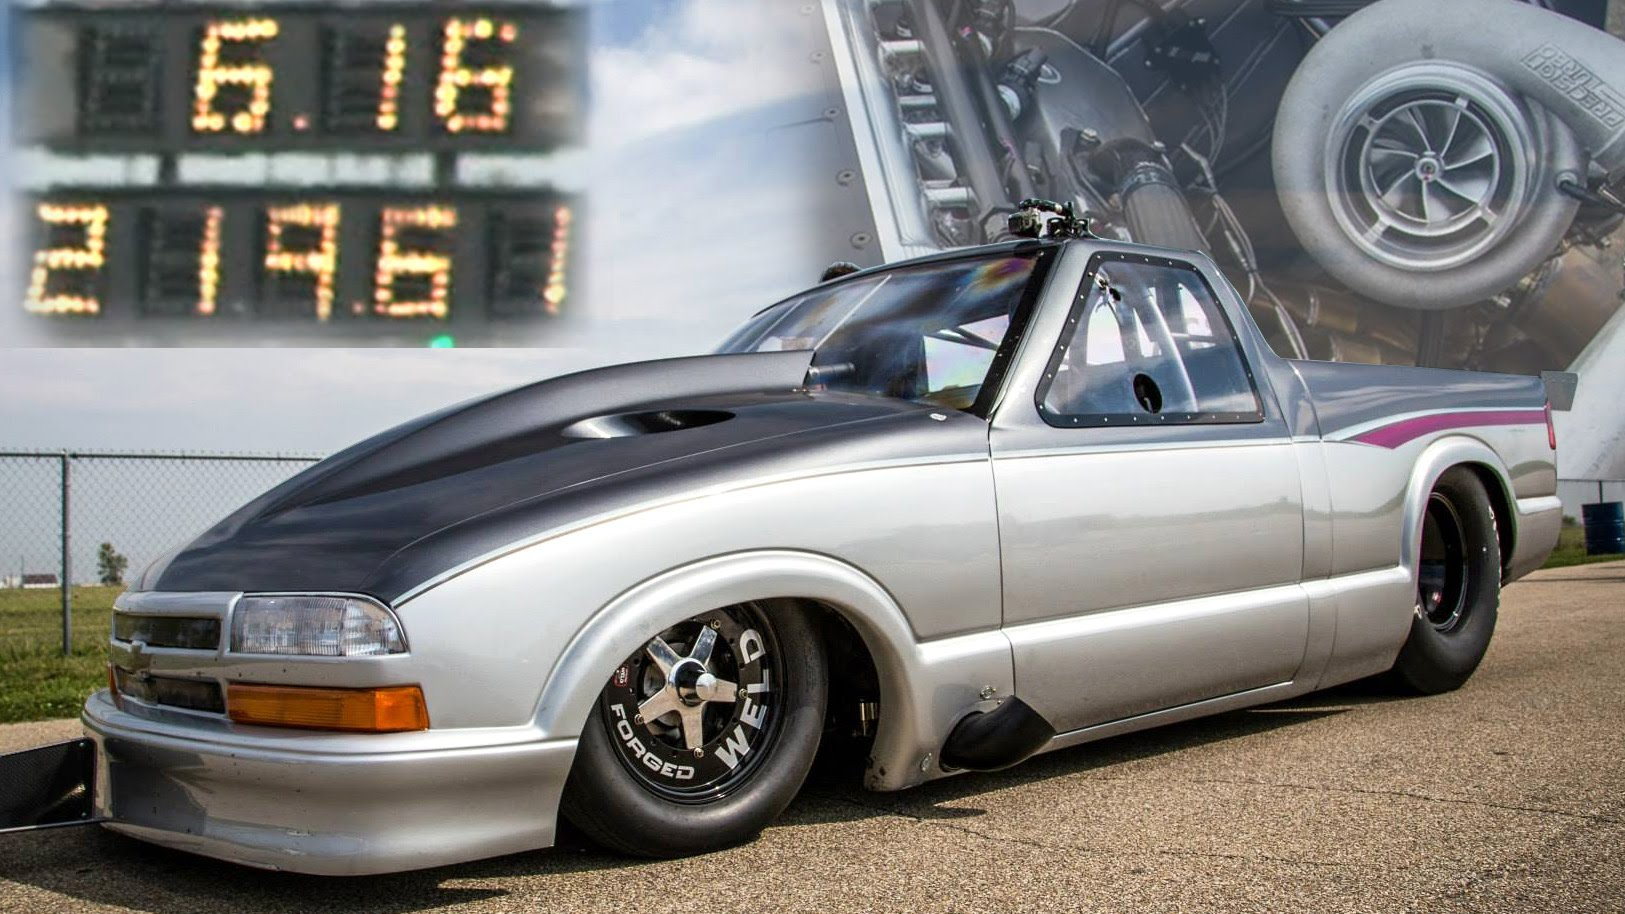 Larry Larson's Chevy S-10 that won the 2014 Drag Week Photo: youtube